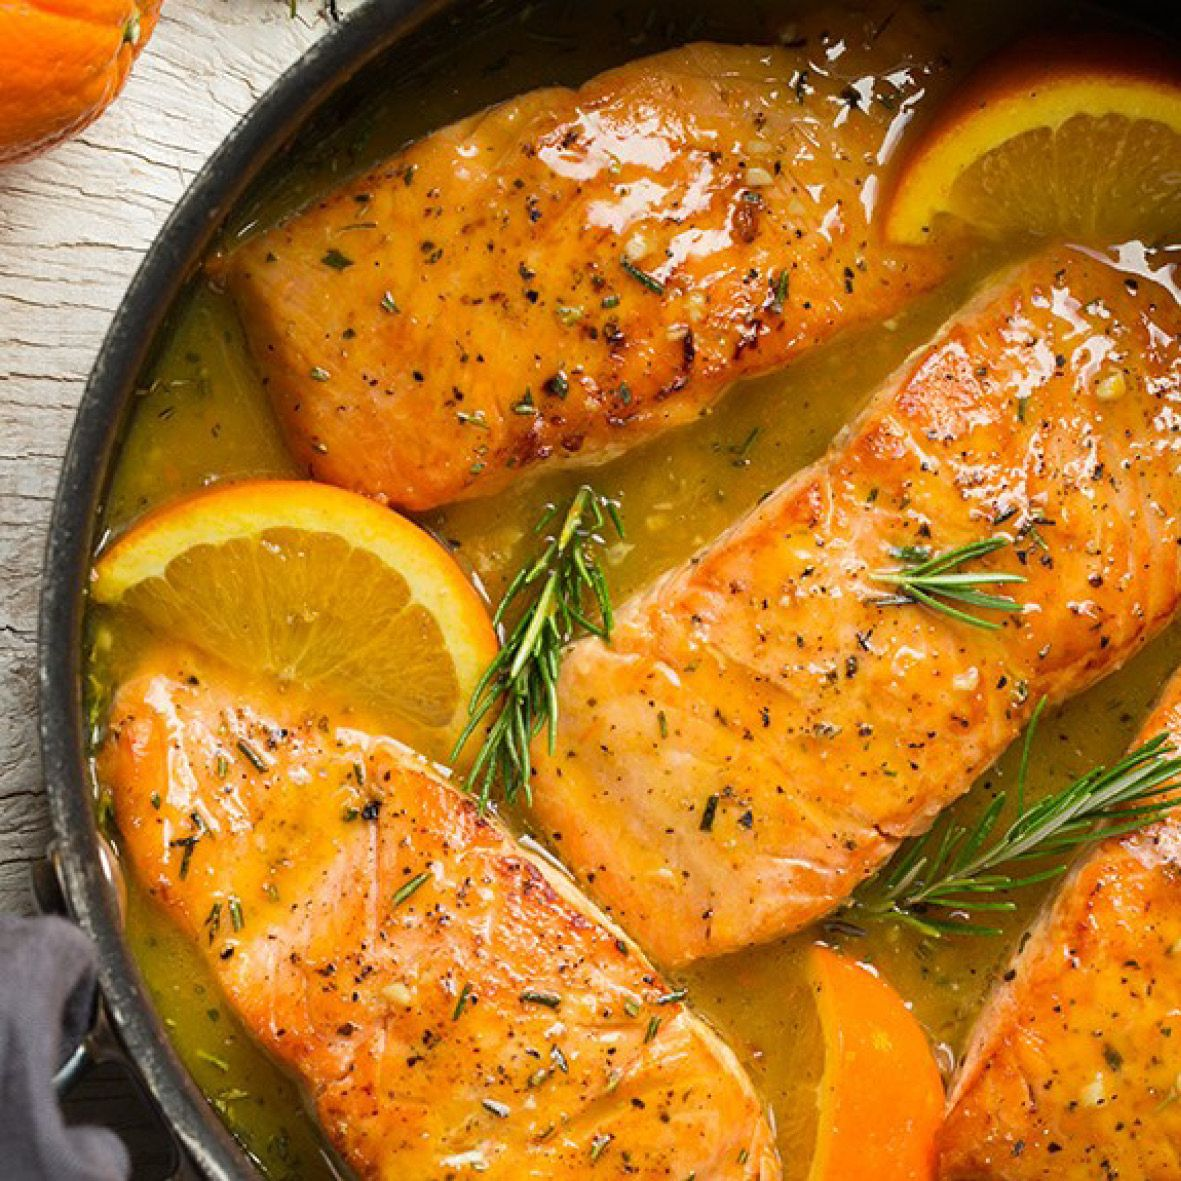 Orange_and_rosemary_glazed_salmon.jpg